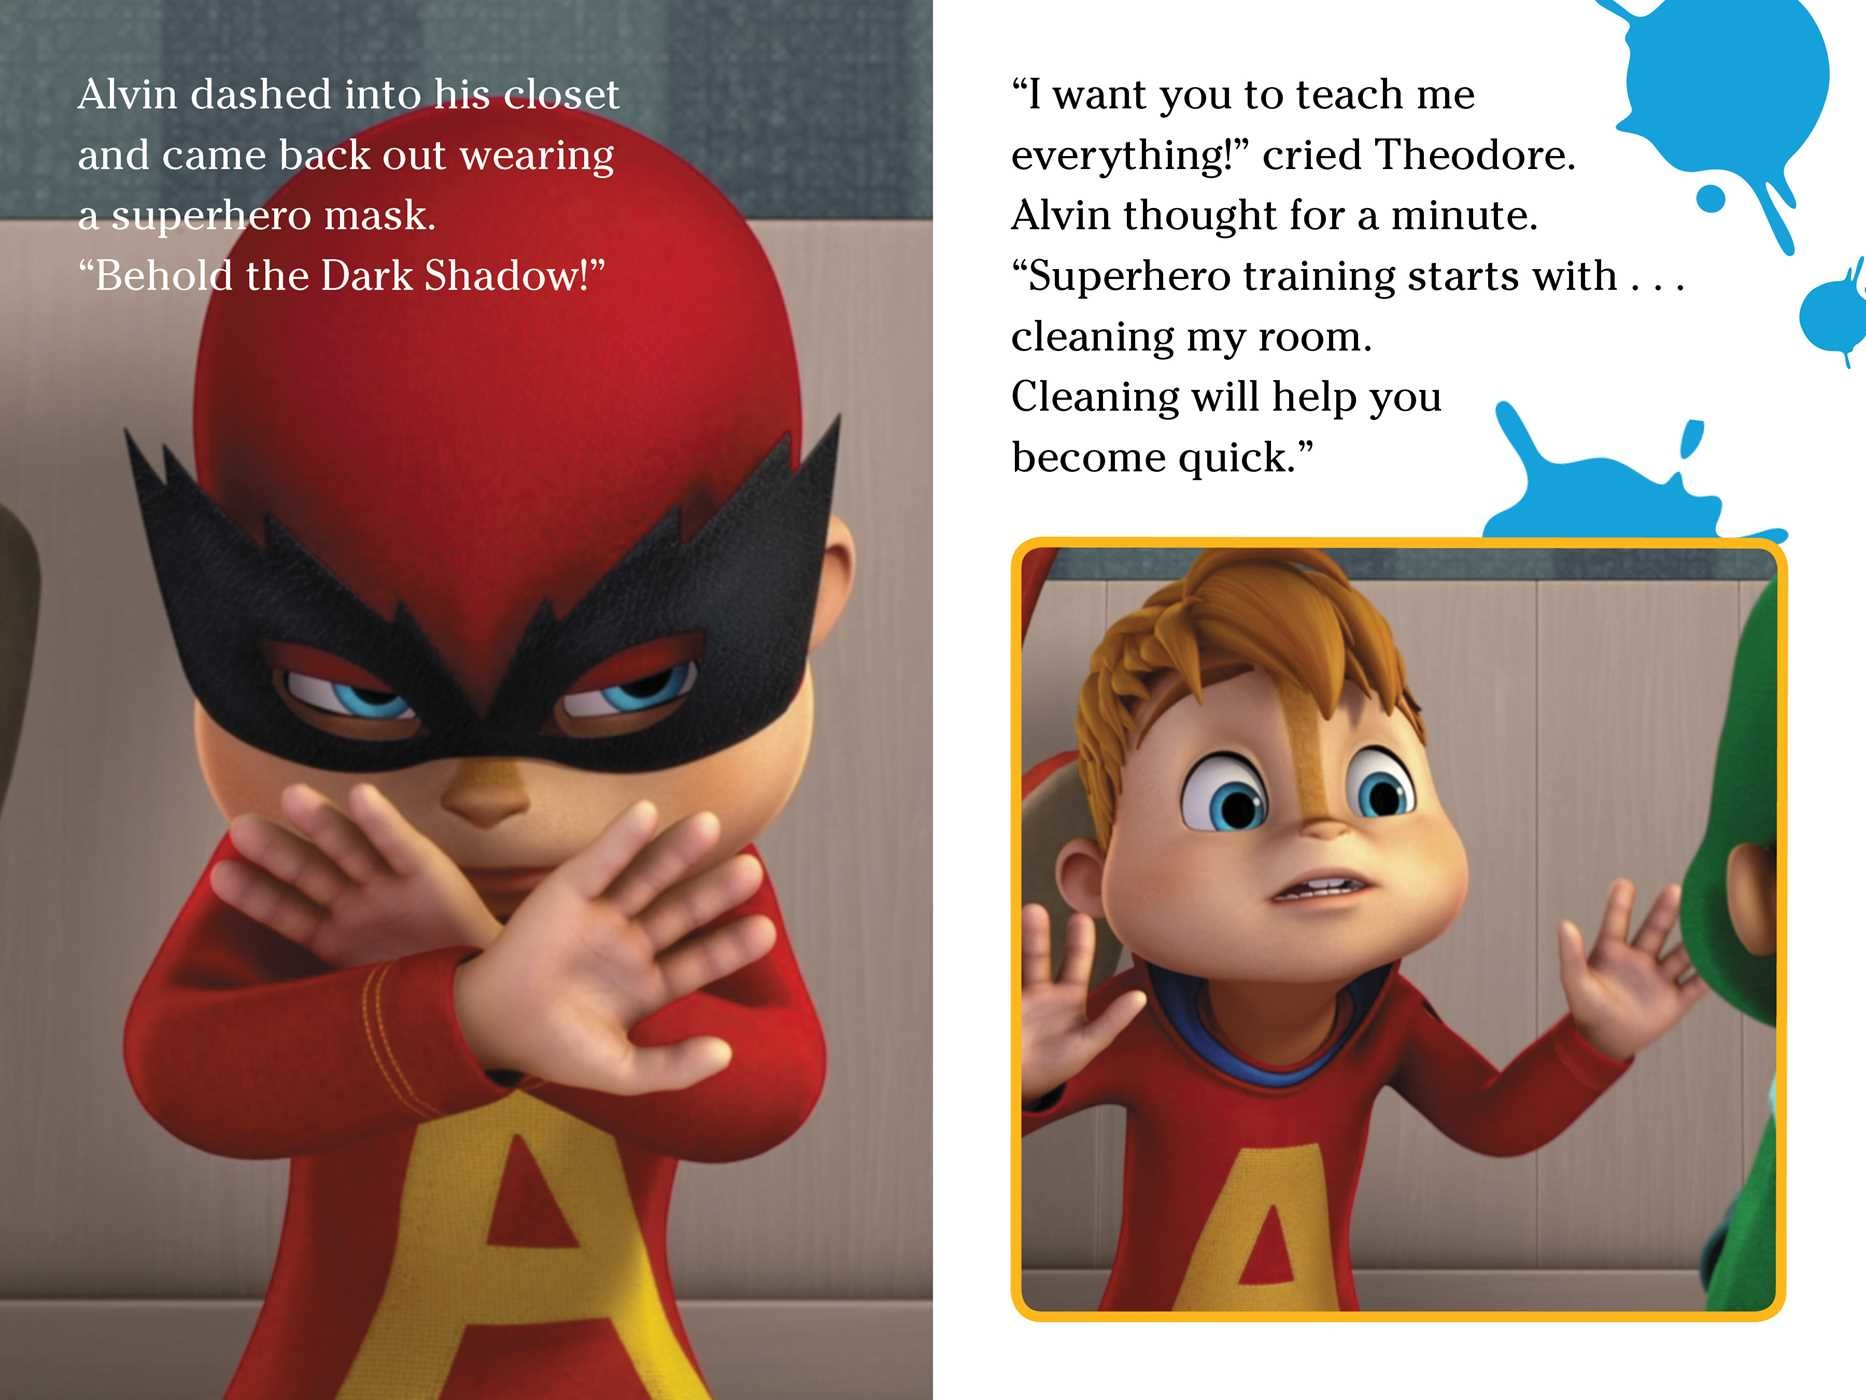 Alvin and the superheroes 9781534400092.in01